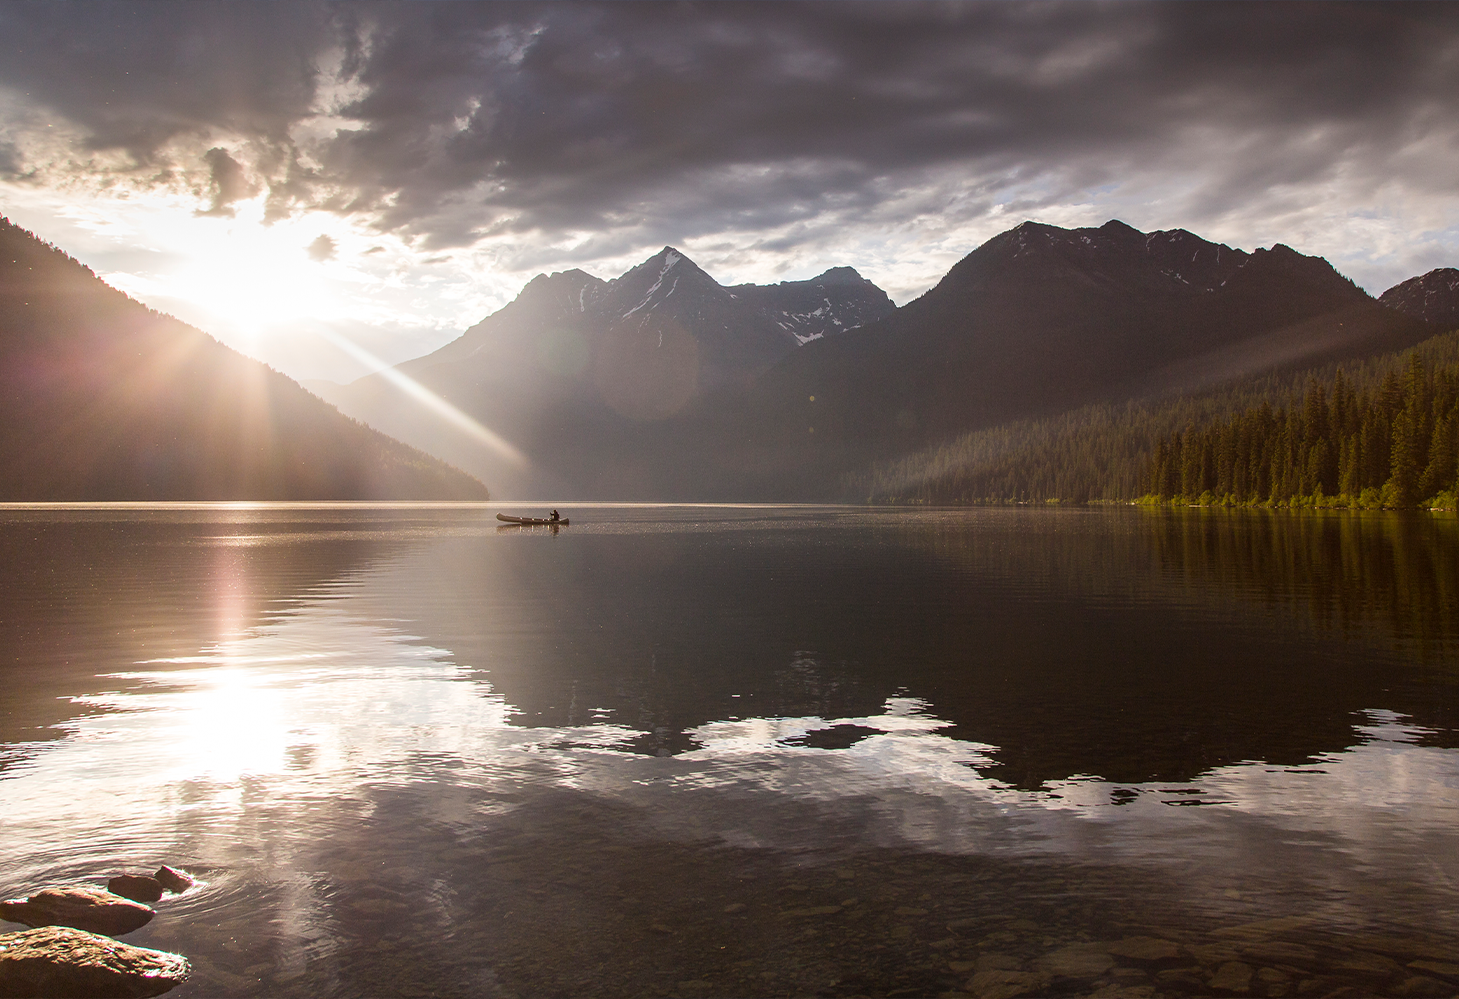 The sun sets behind a mountain range with an alpine lake in the foreground